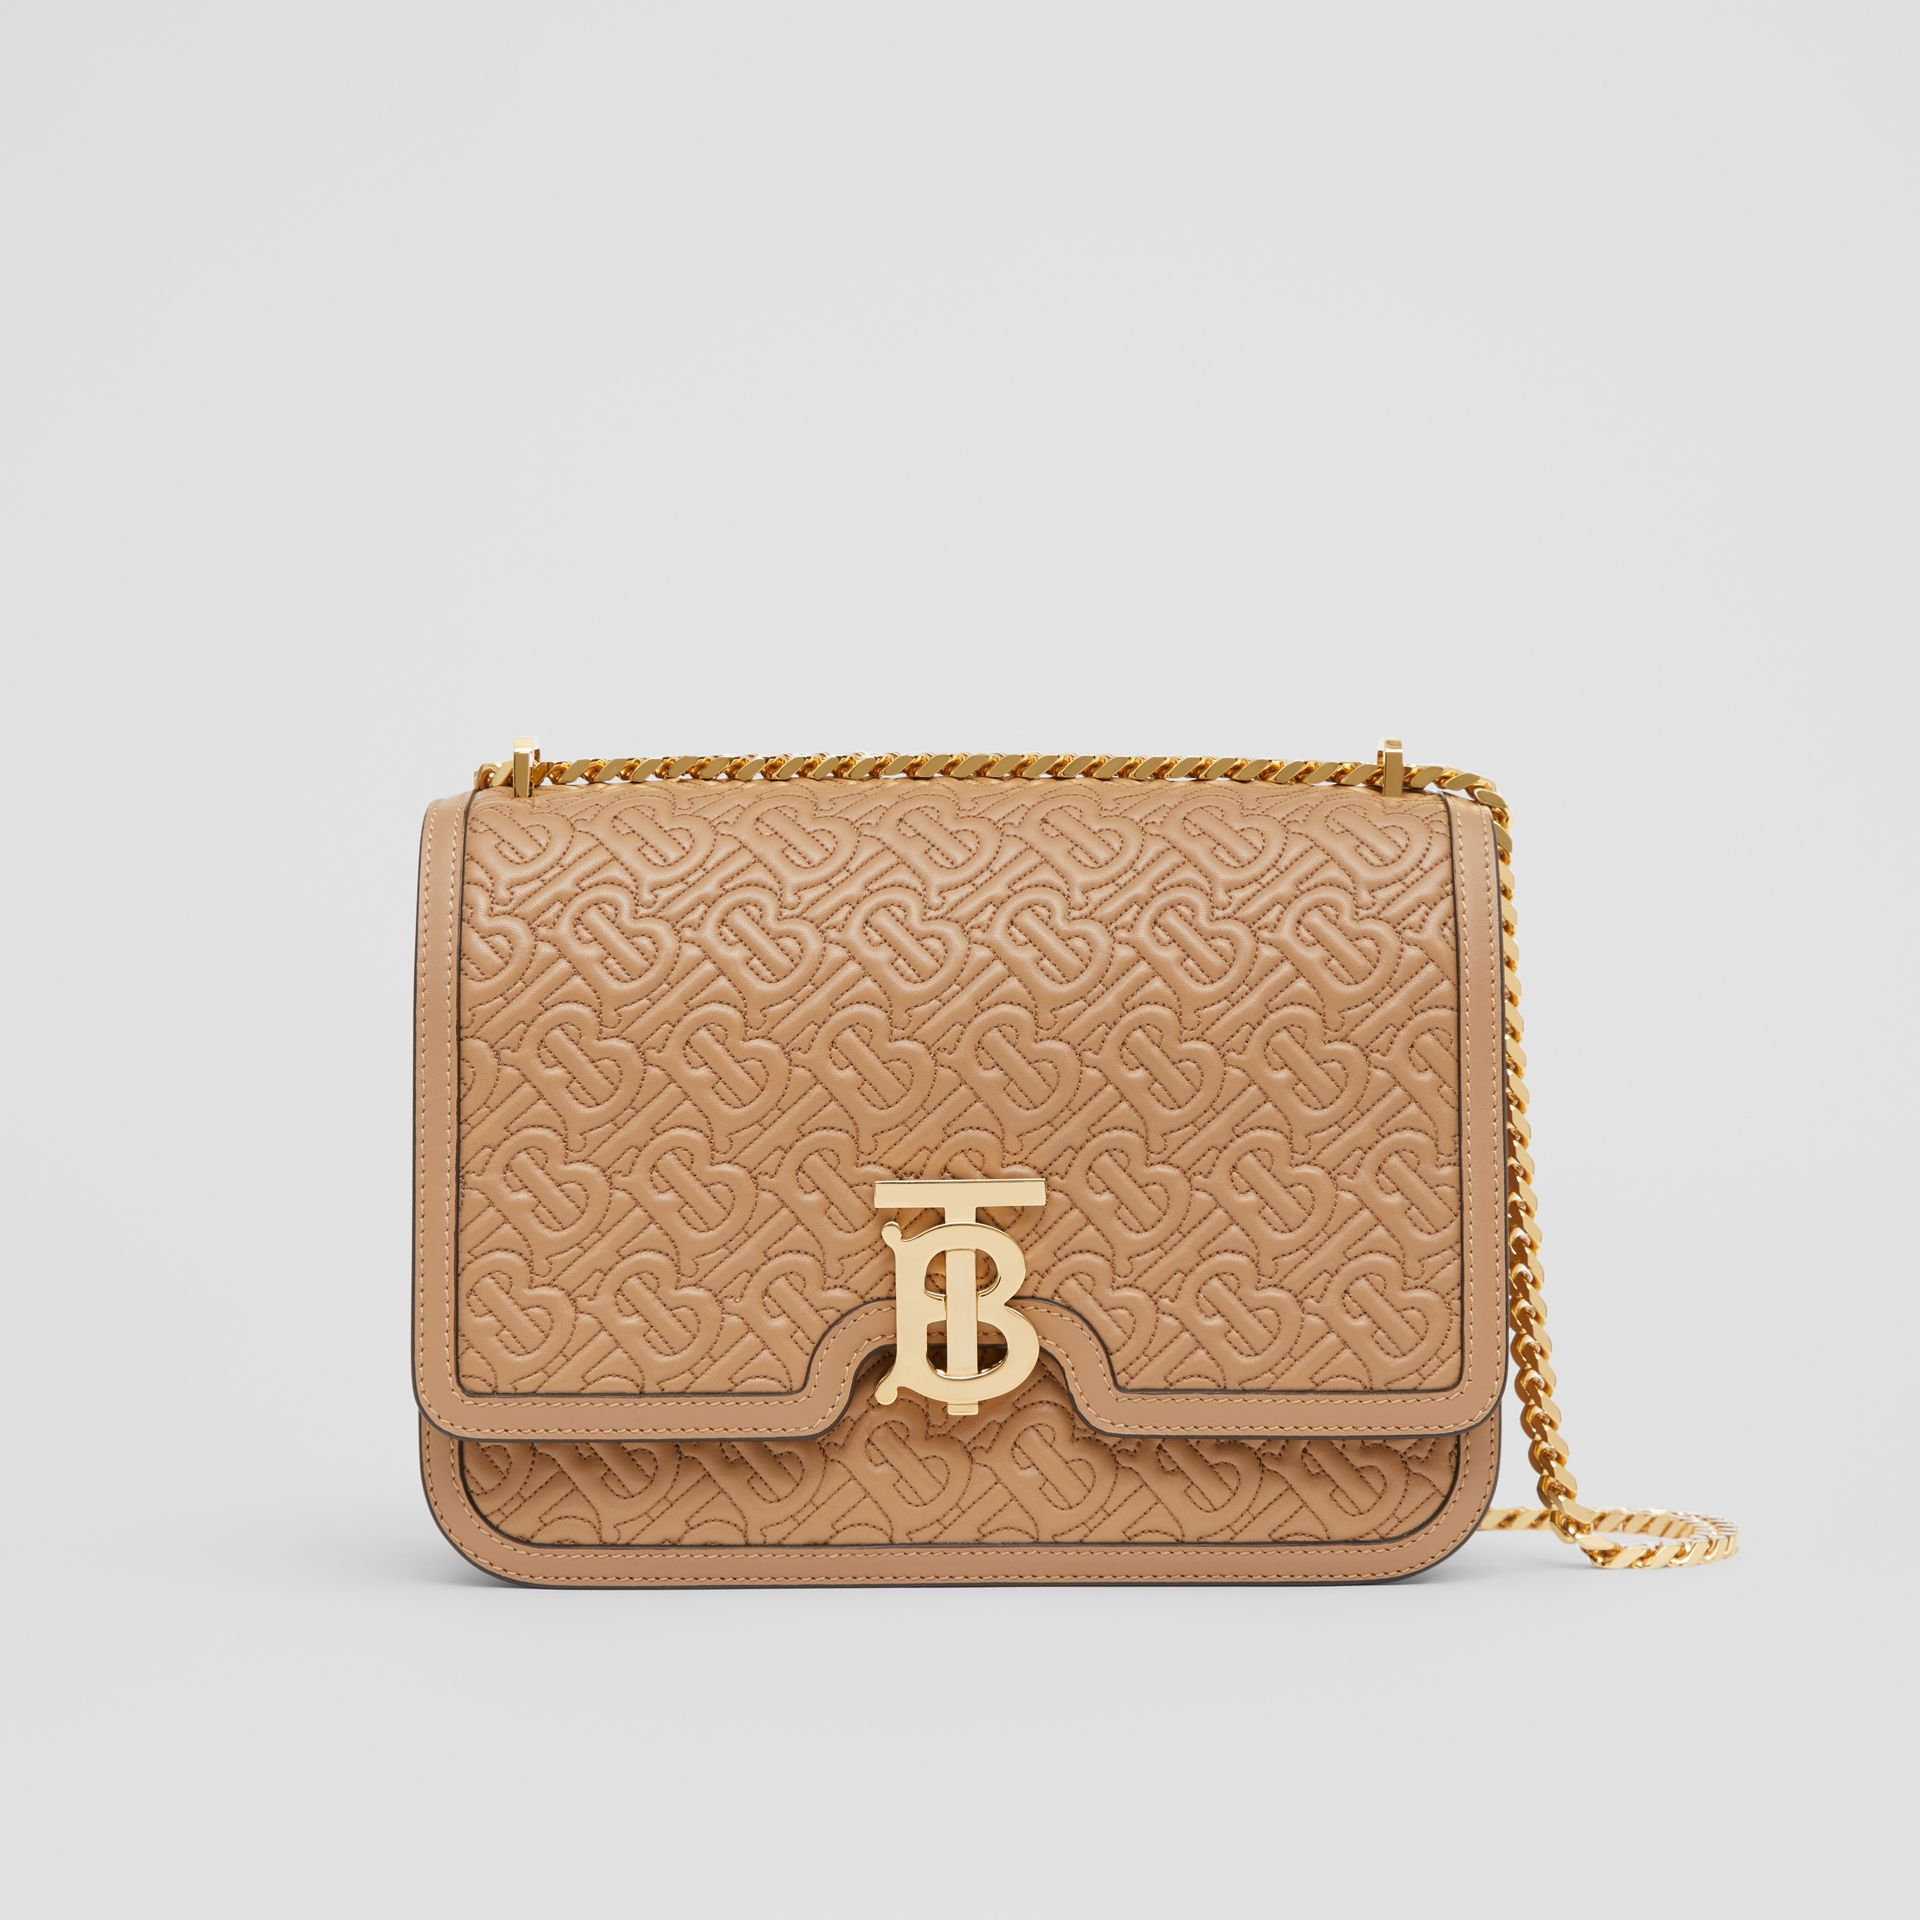 Medium Quilted Monogram Lambskin TB Bag in Honey - Women | Burberry Hong Kong - gallery image 0